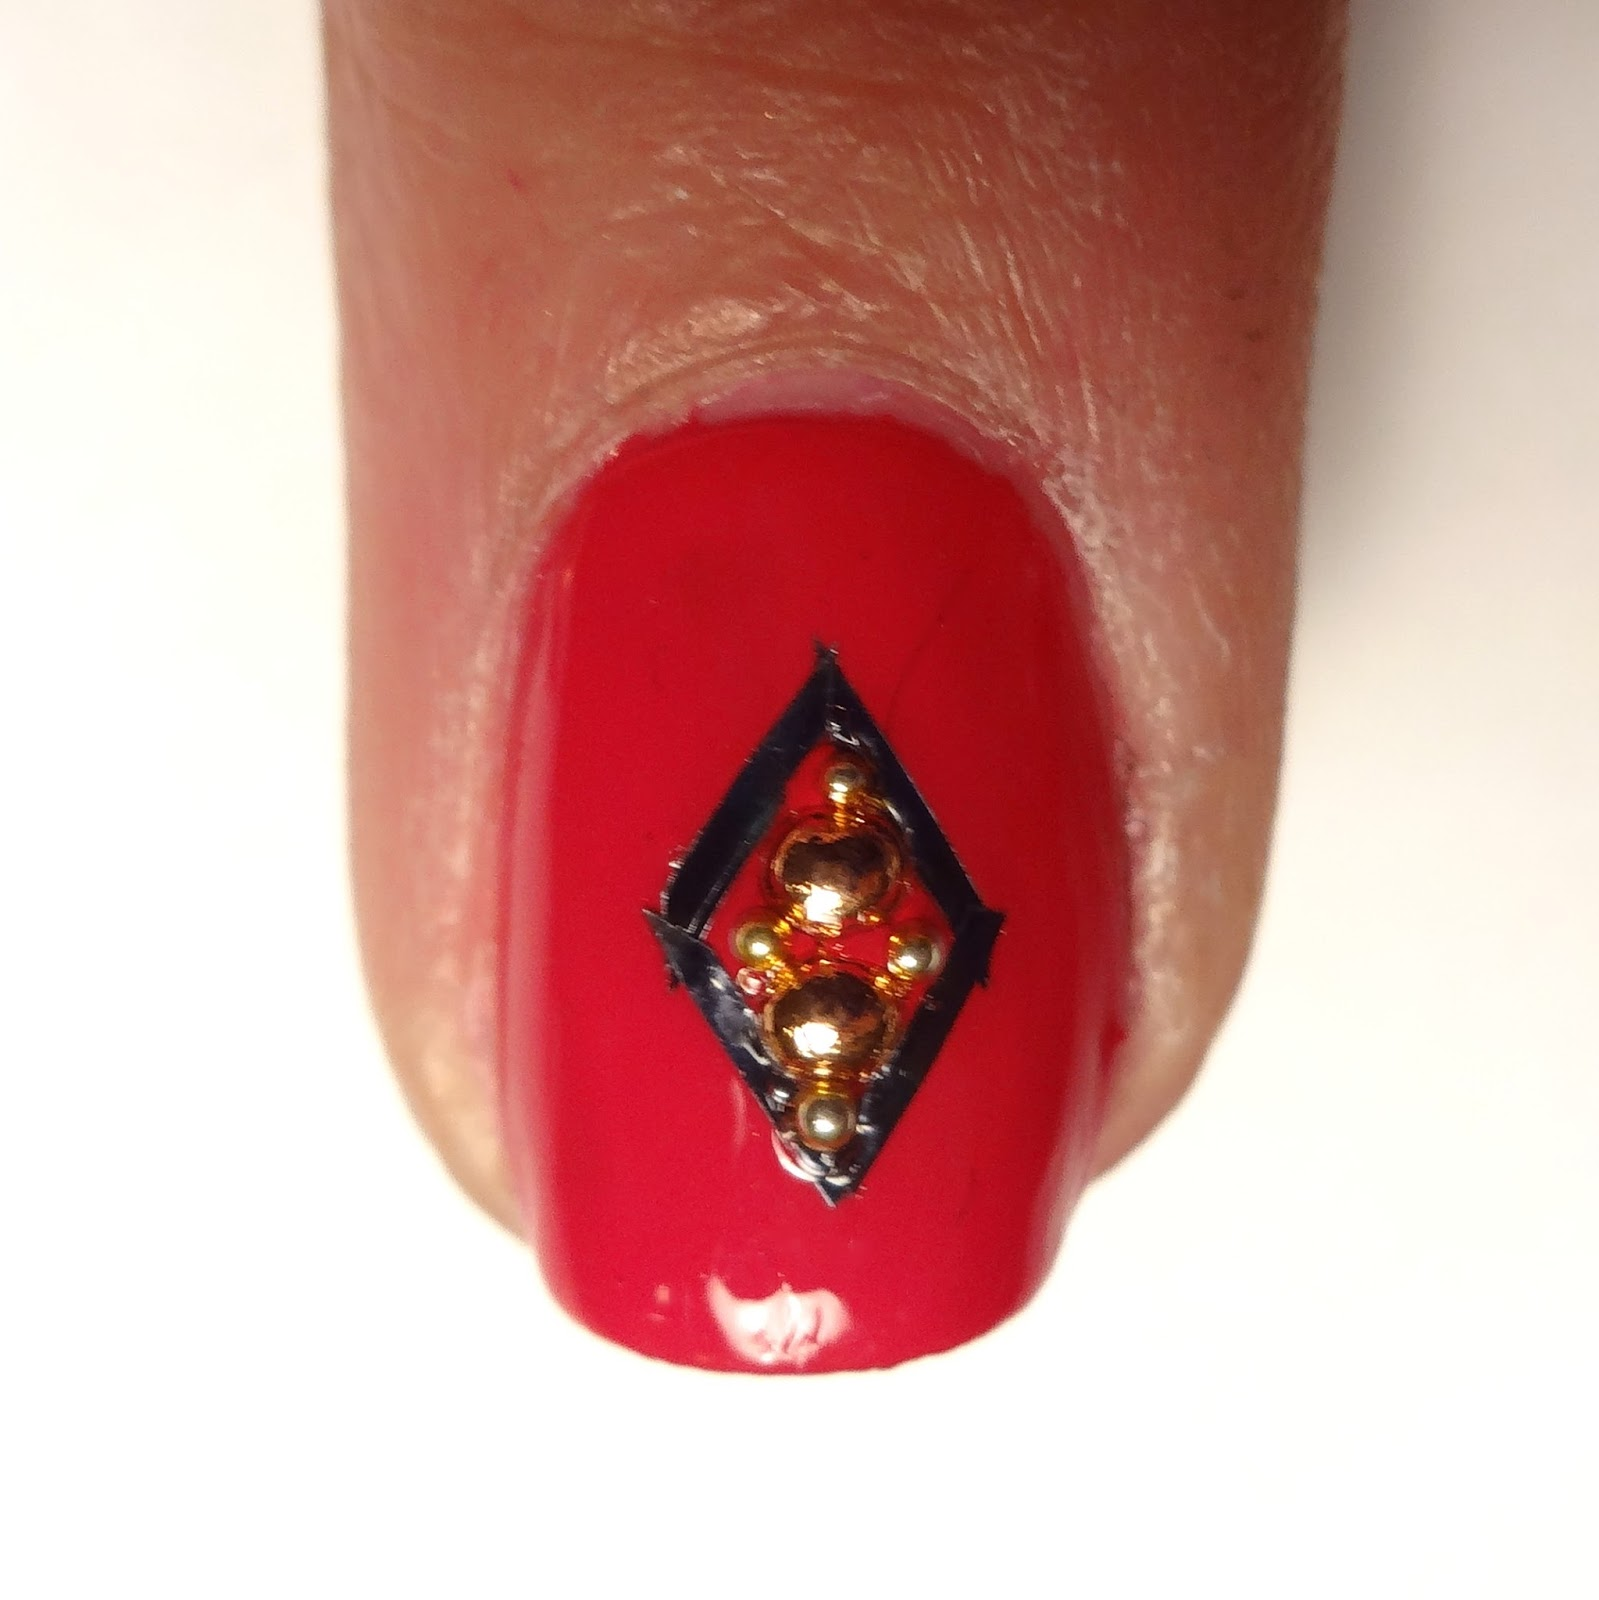 Lacquered lawyer nail art blog fire engine fab middle nail art prinsesfo Gallery